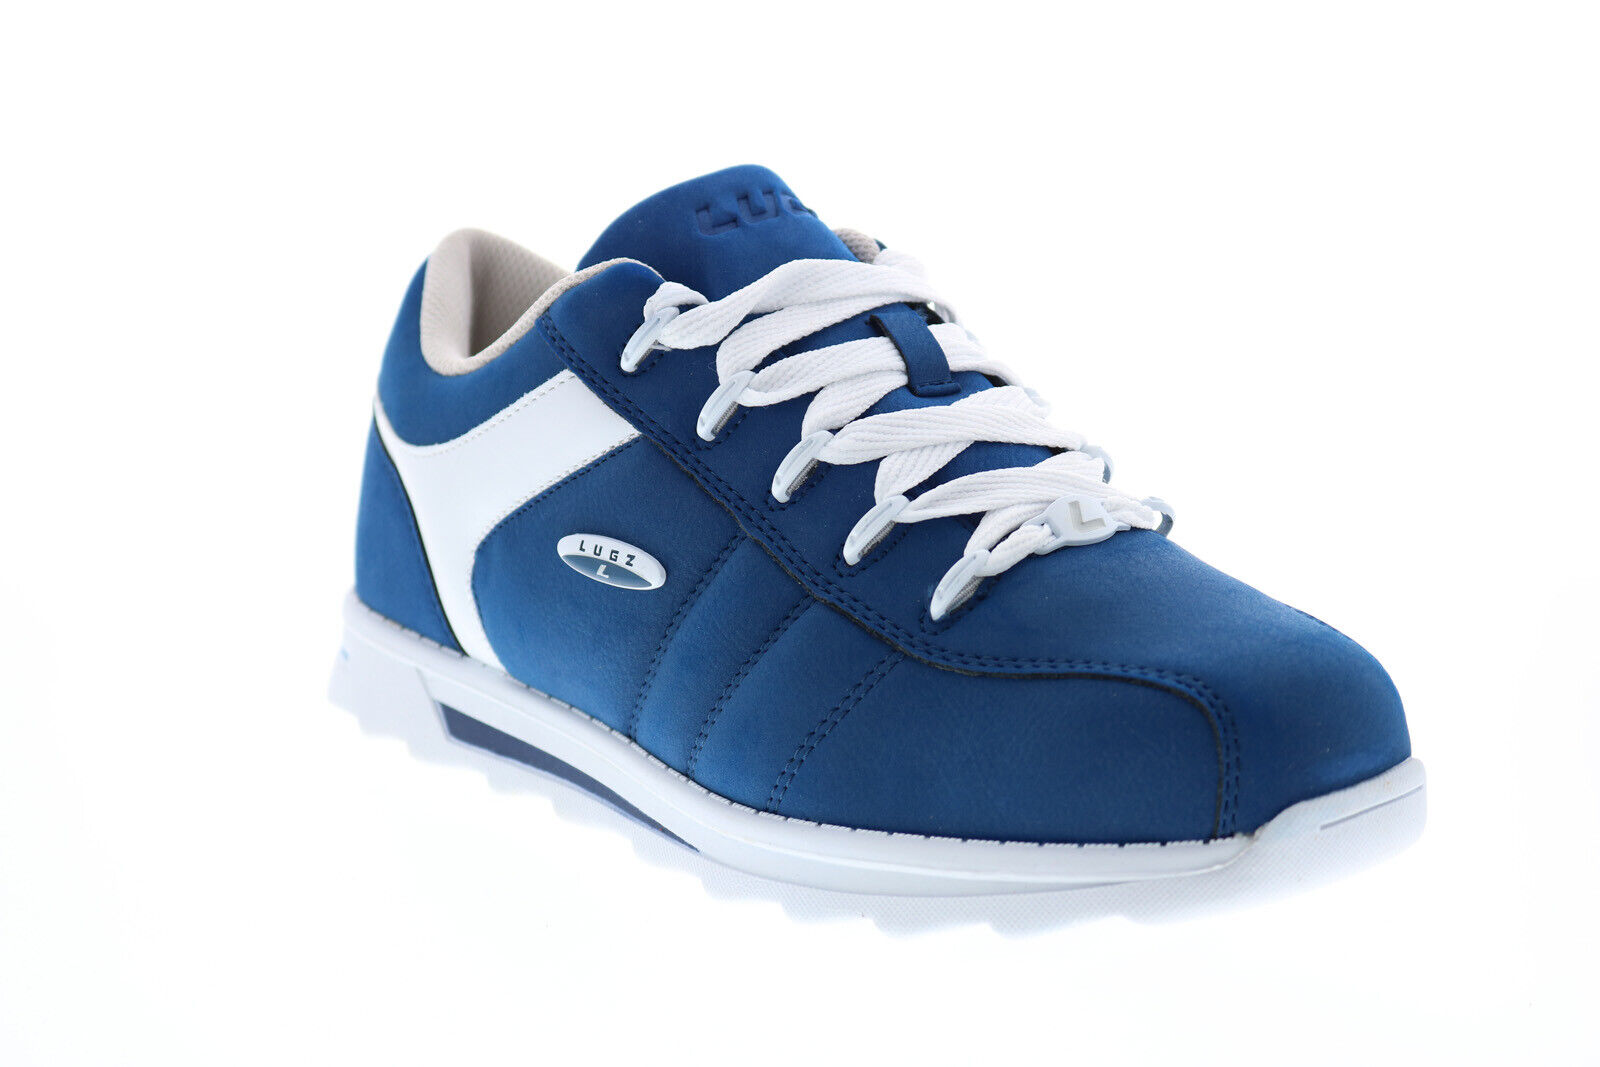 Lugz Blitz MBLITD-429 Mens Blue Synthetic Lace Up Lifestyle Sneakers Shoes